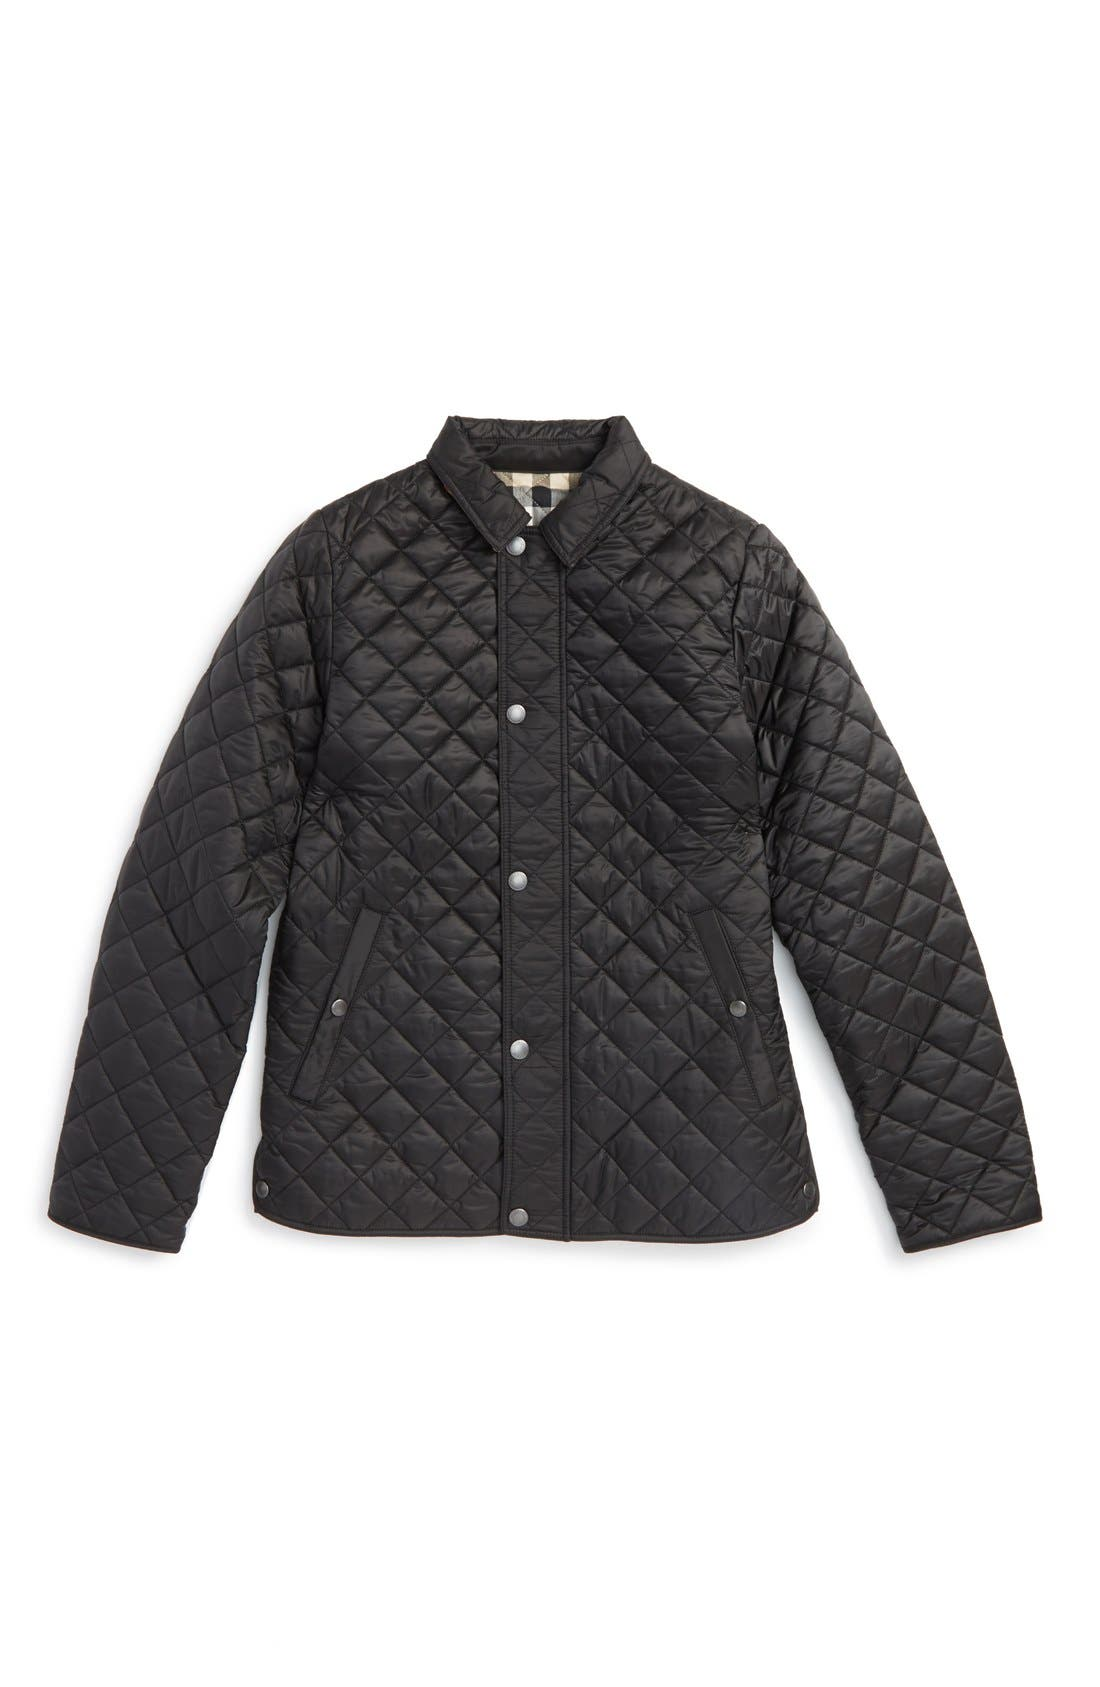 BURBERRY,                             Quilted Jacket,                             Main thumbnail 1, color,                             001